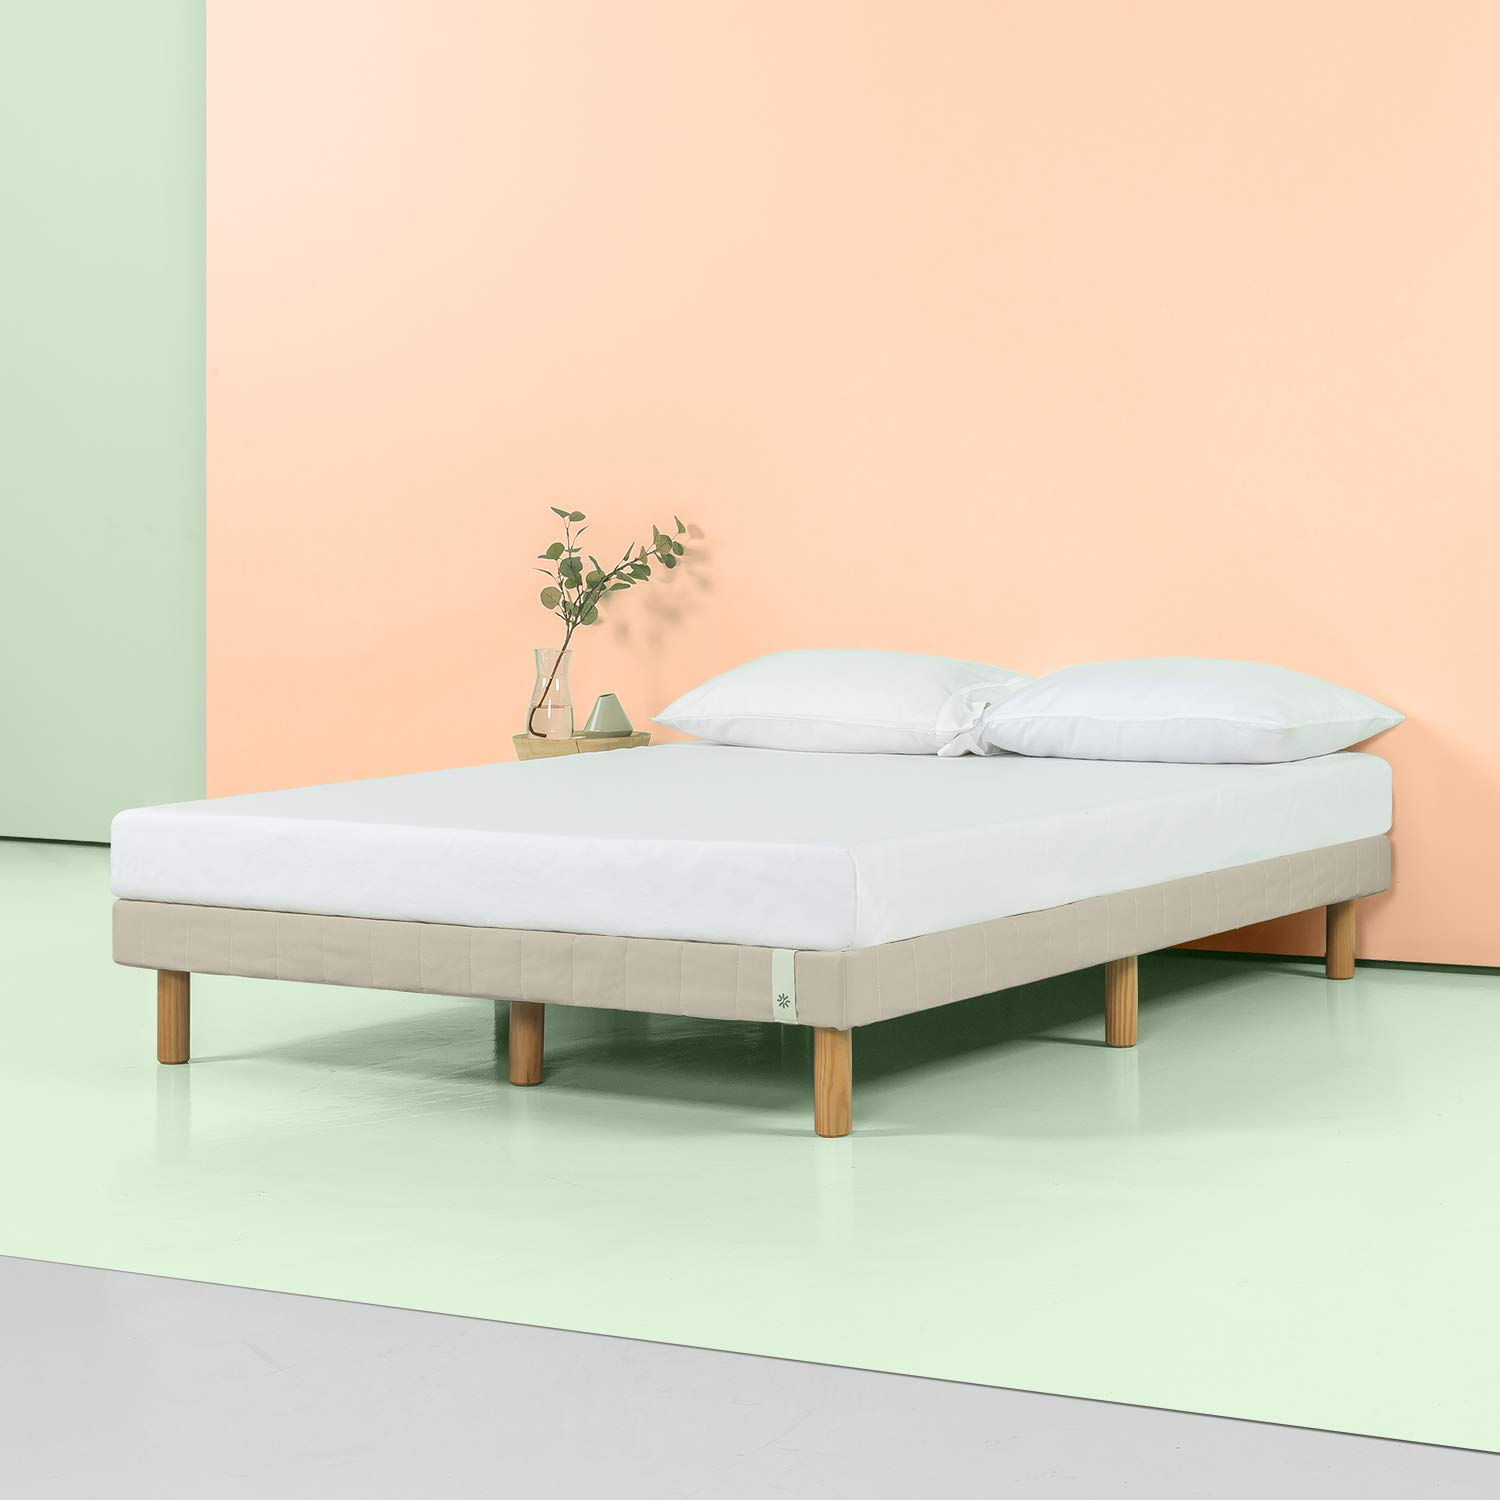 Zinus 11 Inch Quick Snap Standing Mattress Foundation/Low profile Platform Bed/No Box Spring needed, Beige, Queen by Zinus